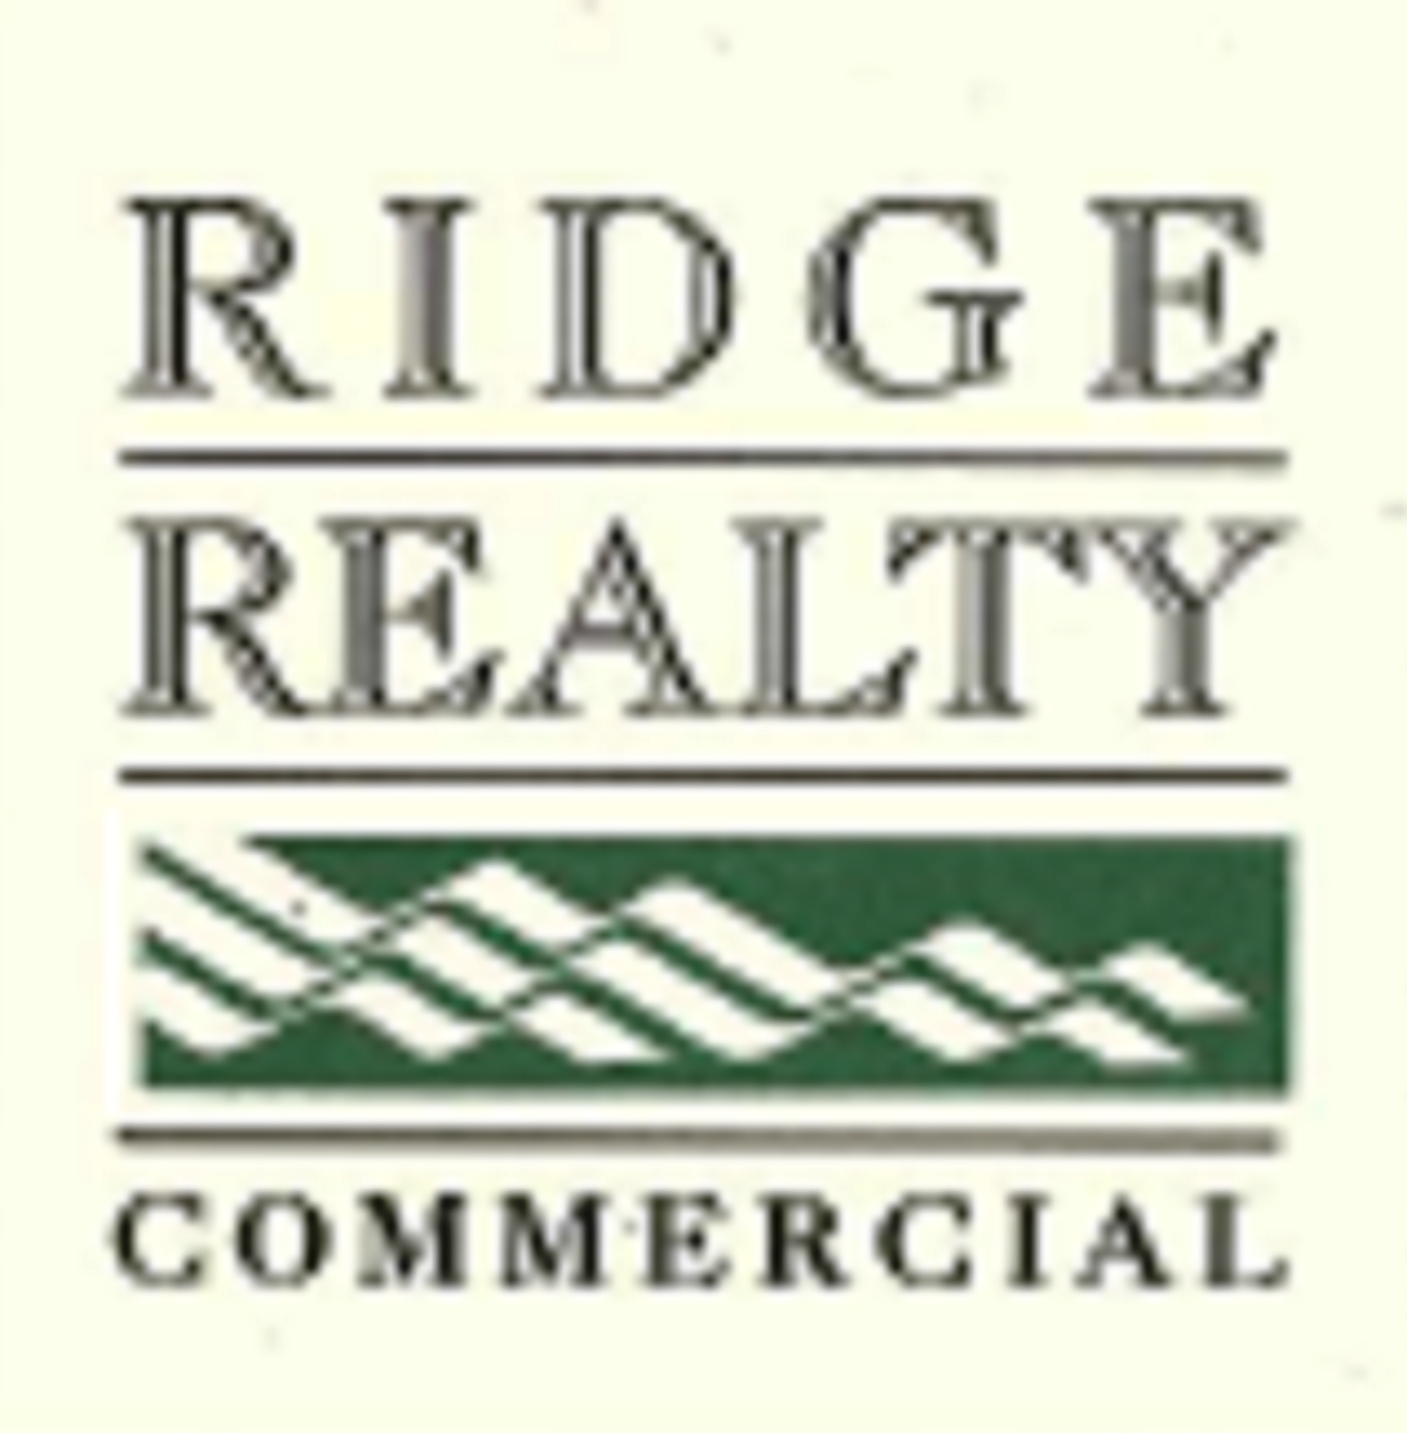 Ridge Realty Commercial